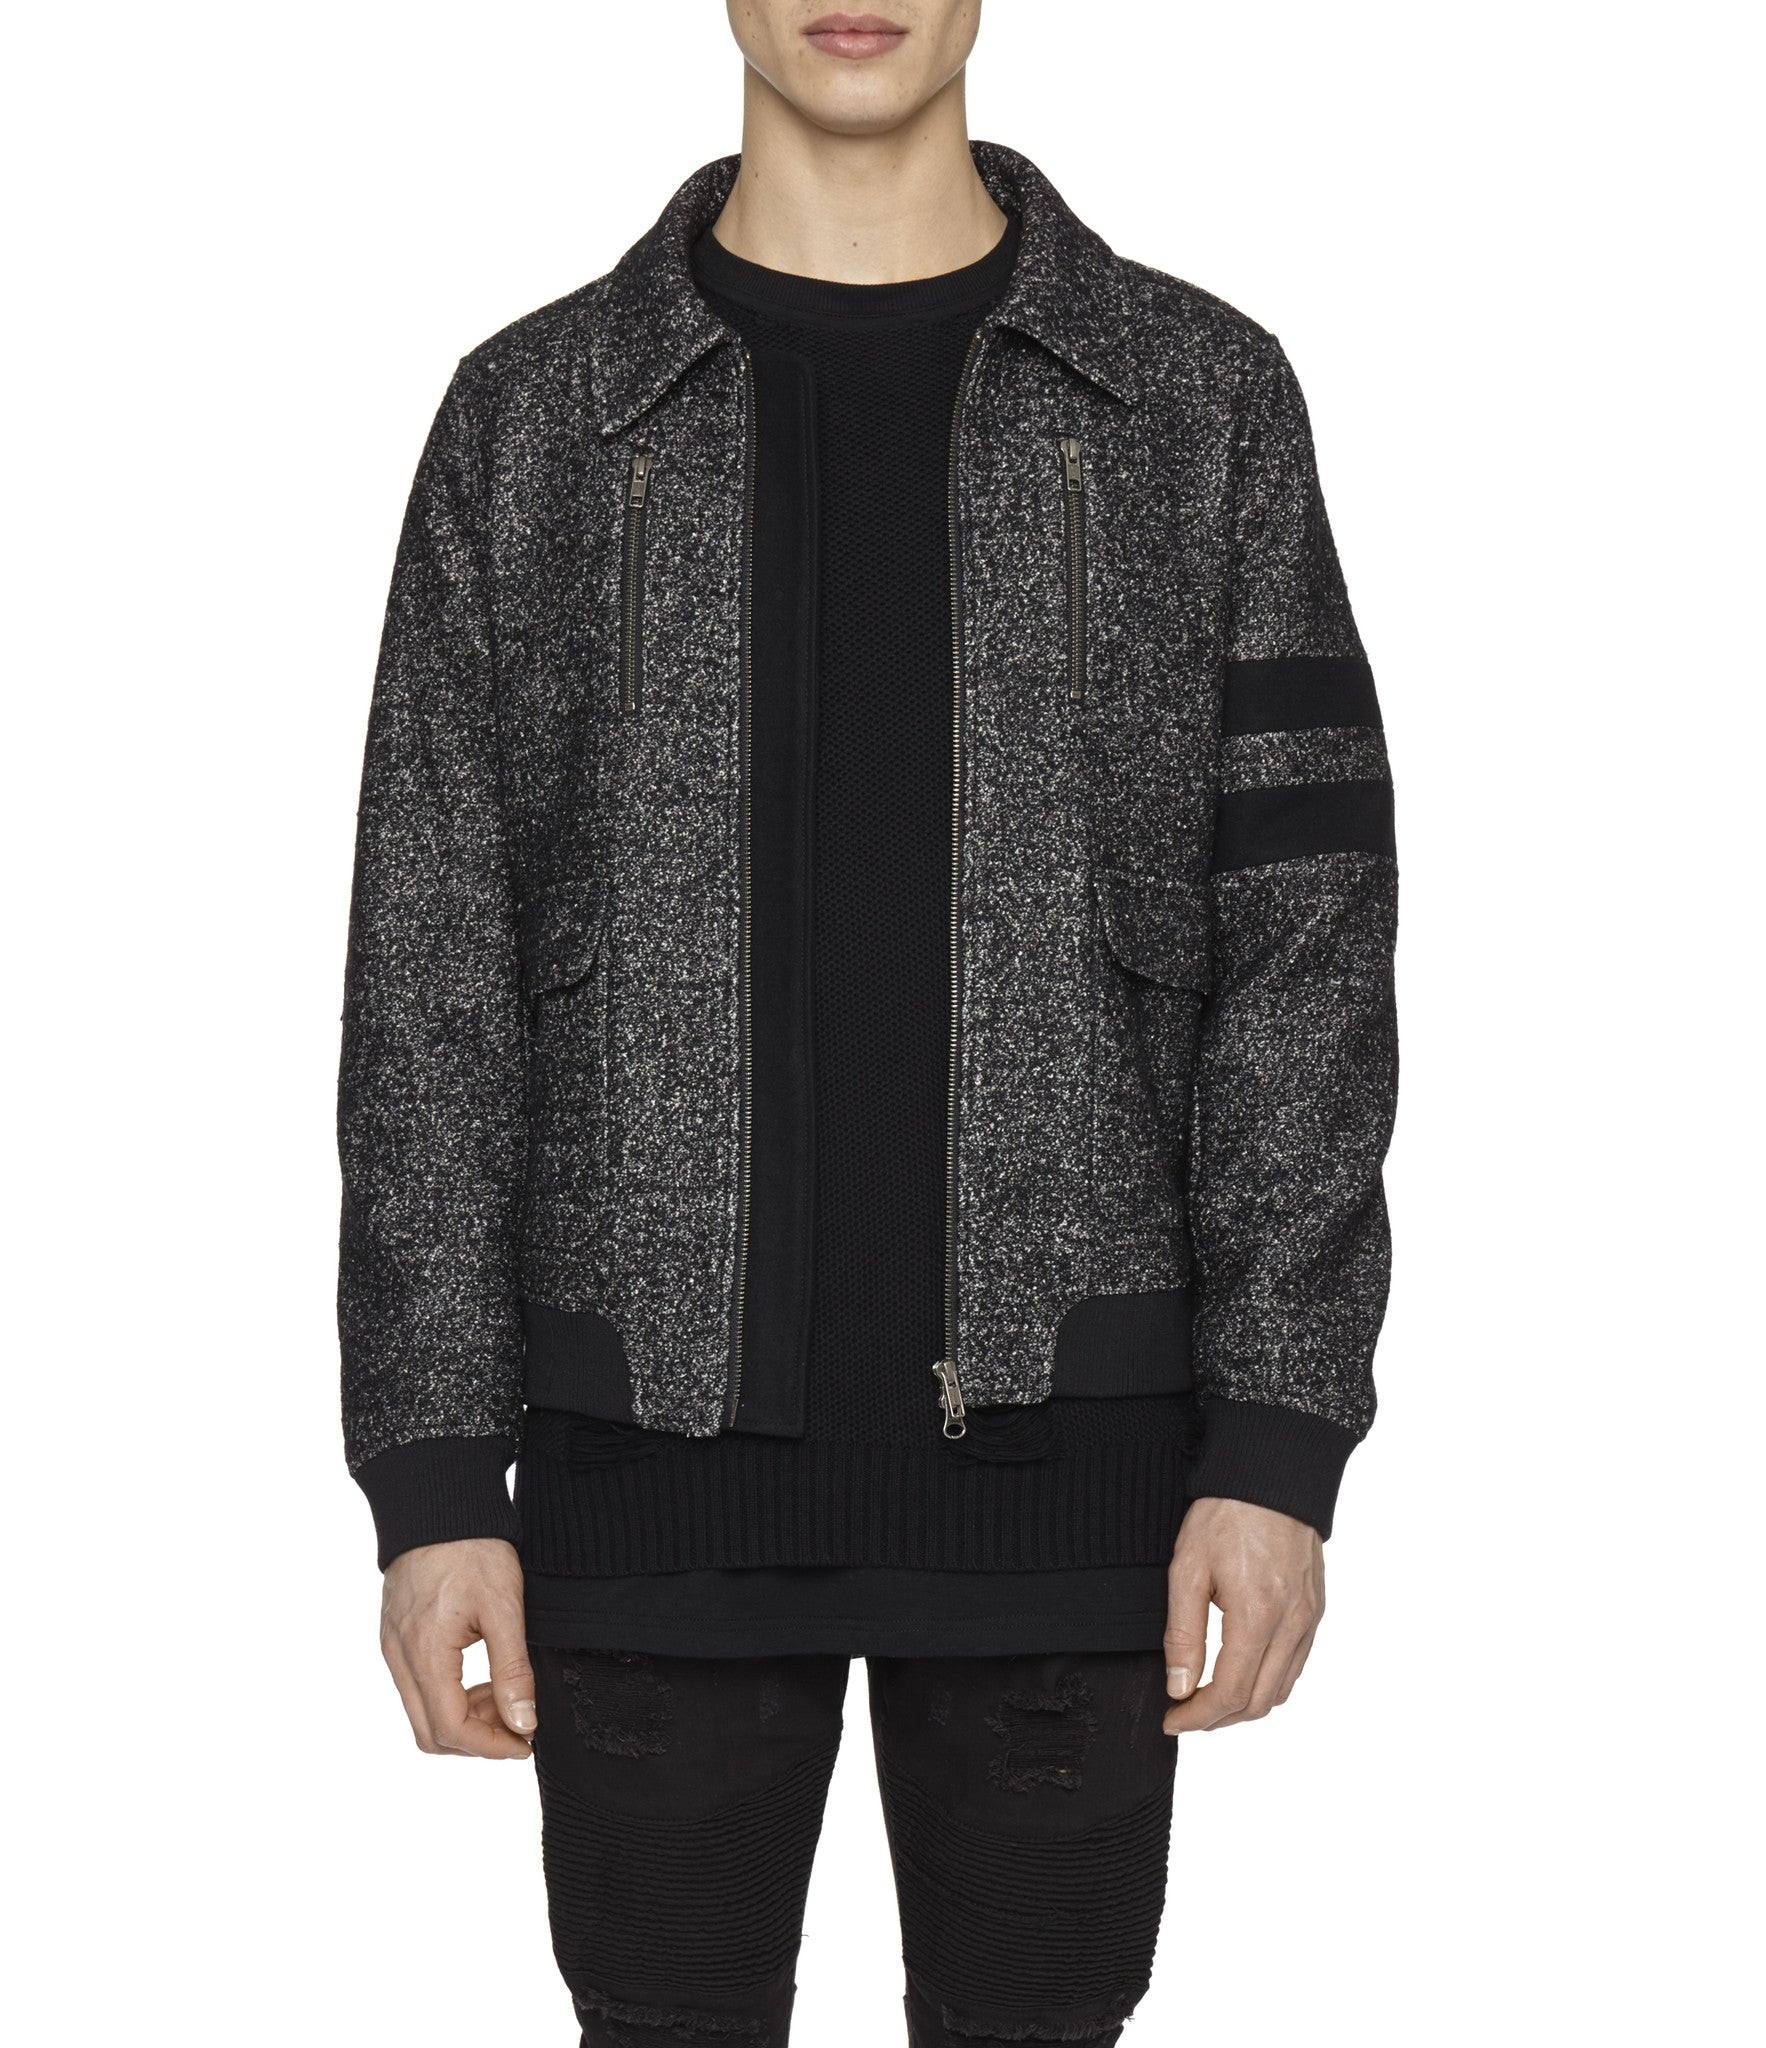 JK225 Shearling-Trimmed Mélange Wool Jacket - Black - underated london - underatedco - 8